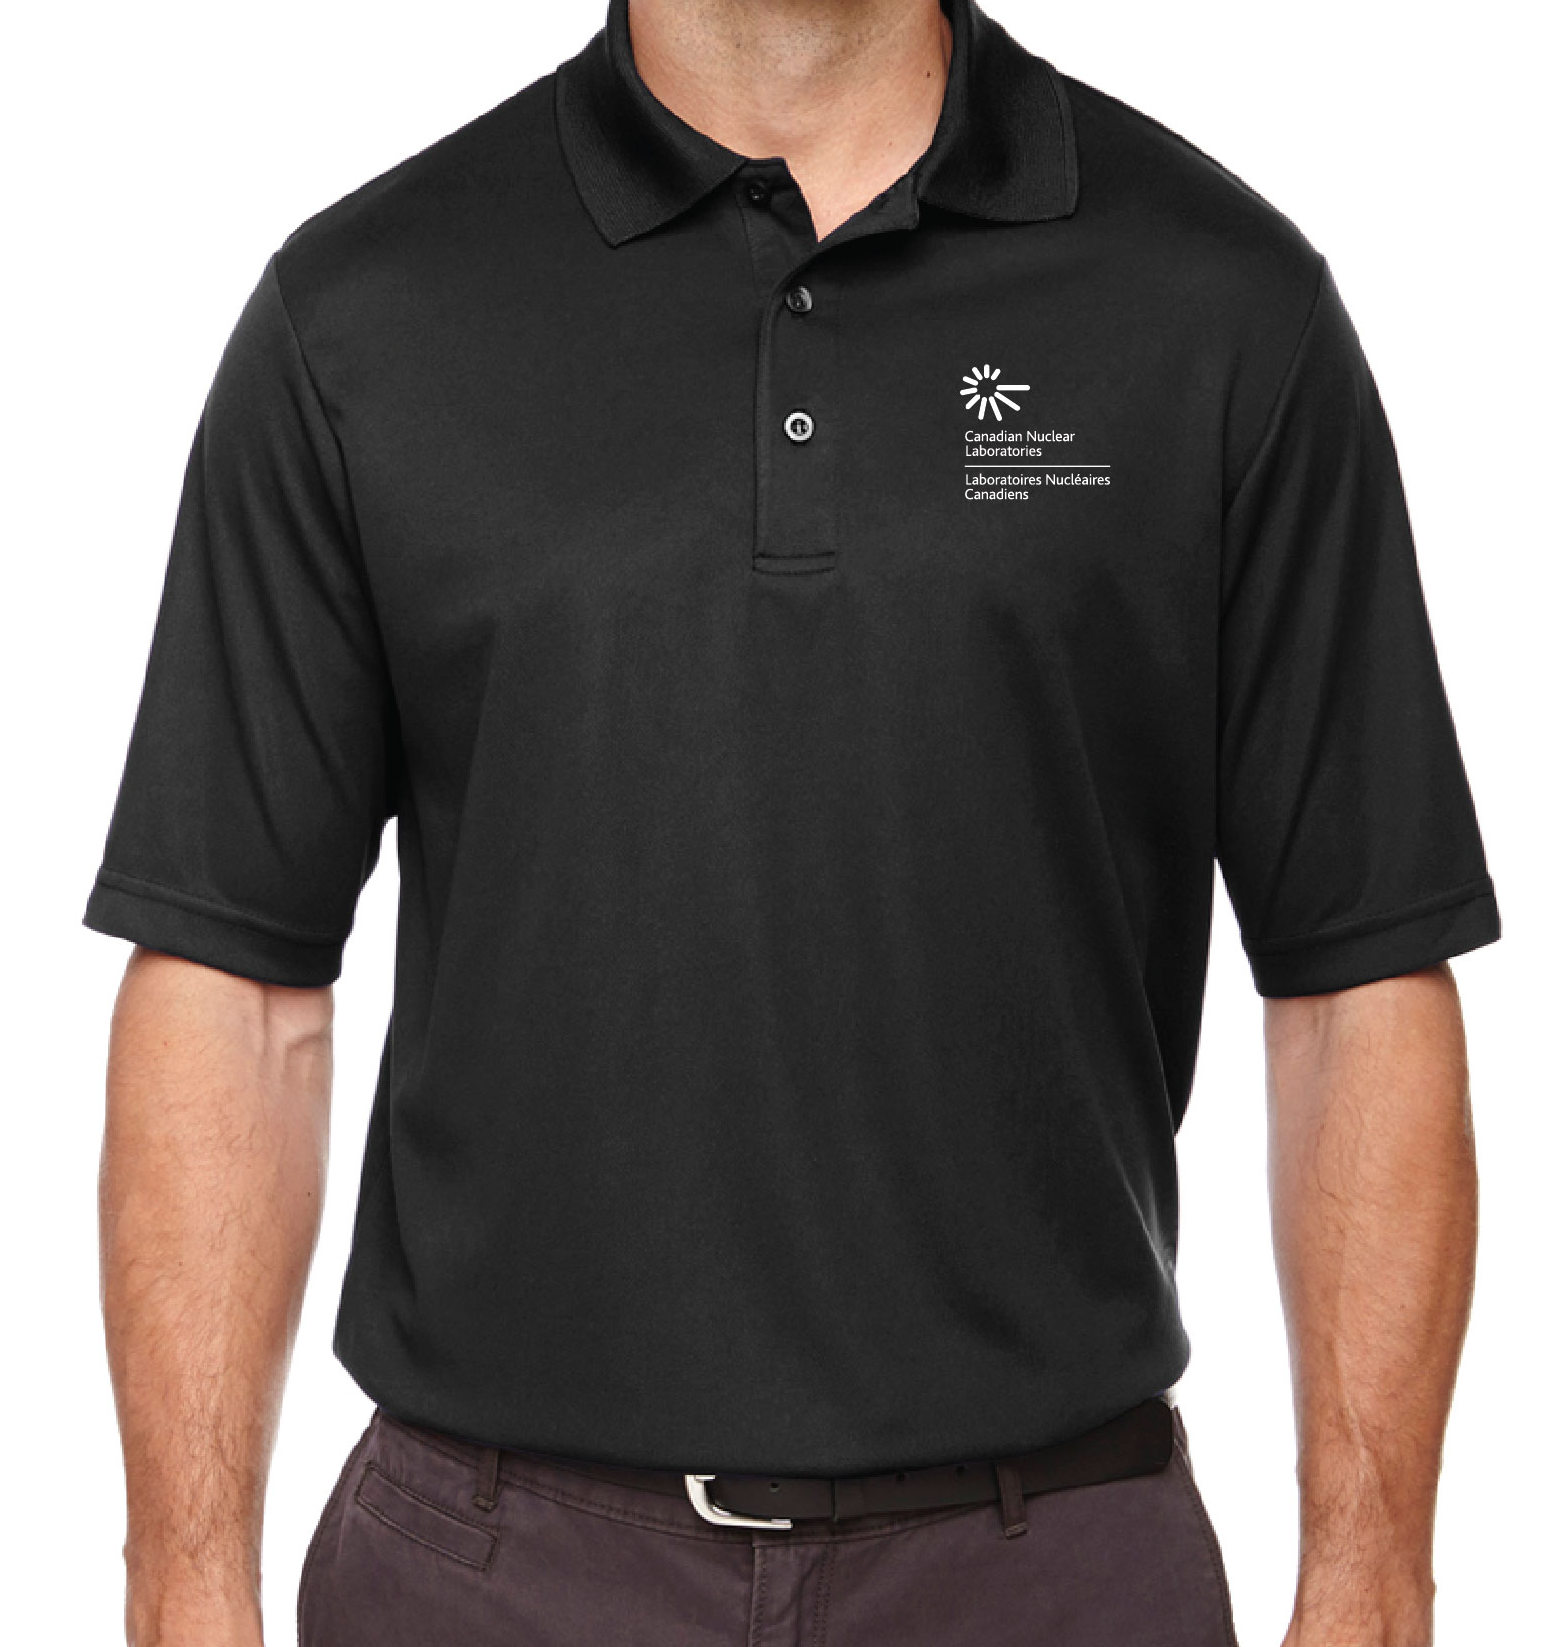 Men s polo shirt cnl e store for Order company polo shirts